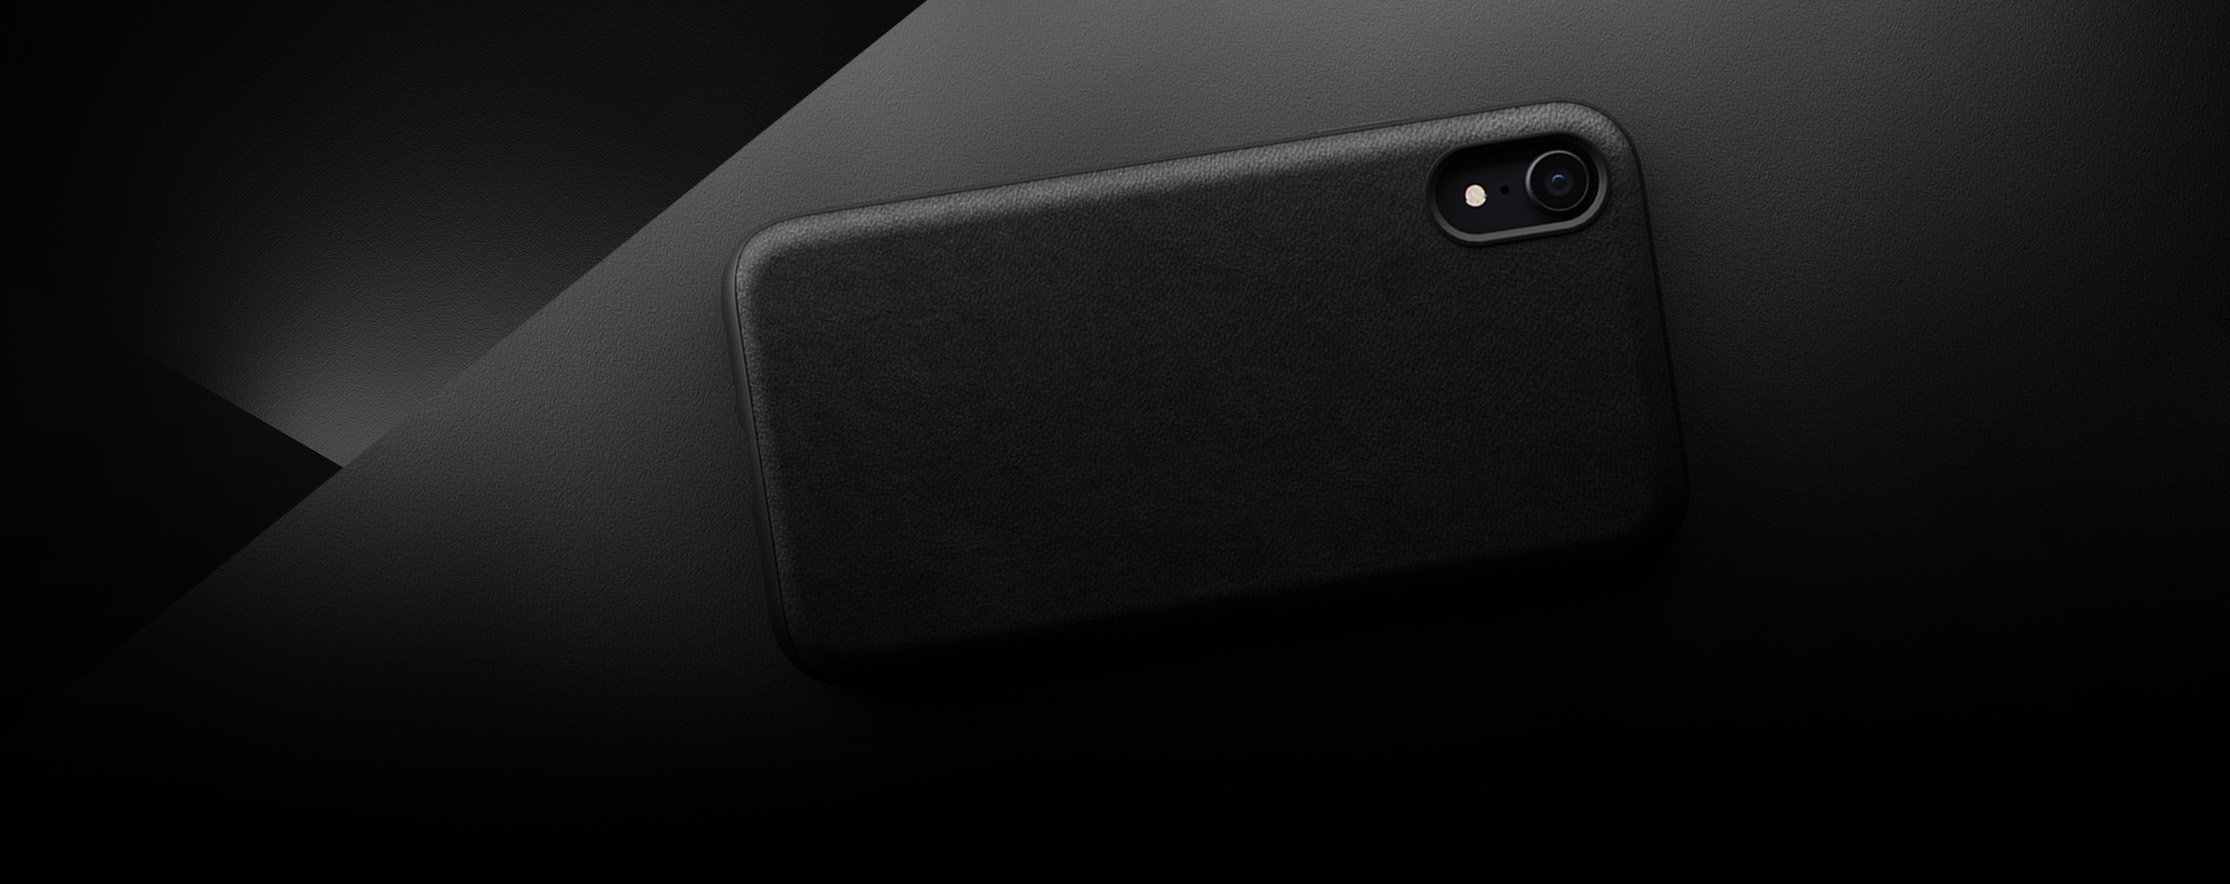 nomad-rugged-case-iphone-xr-black-malaysia-overview-malaysia-8